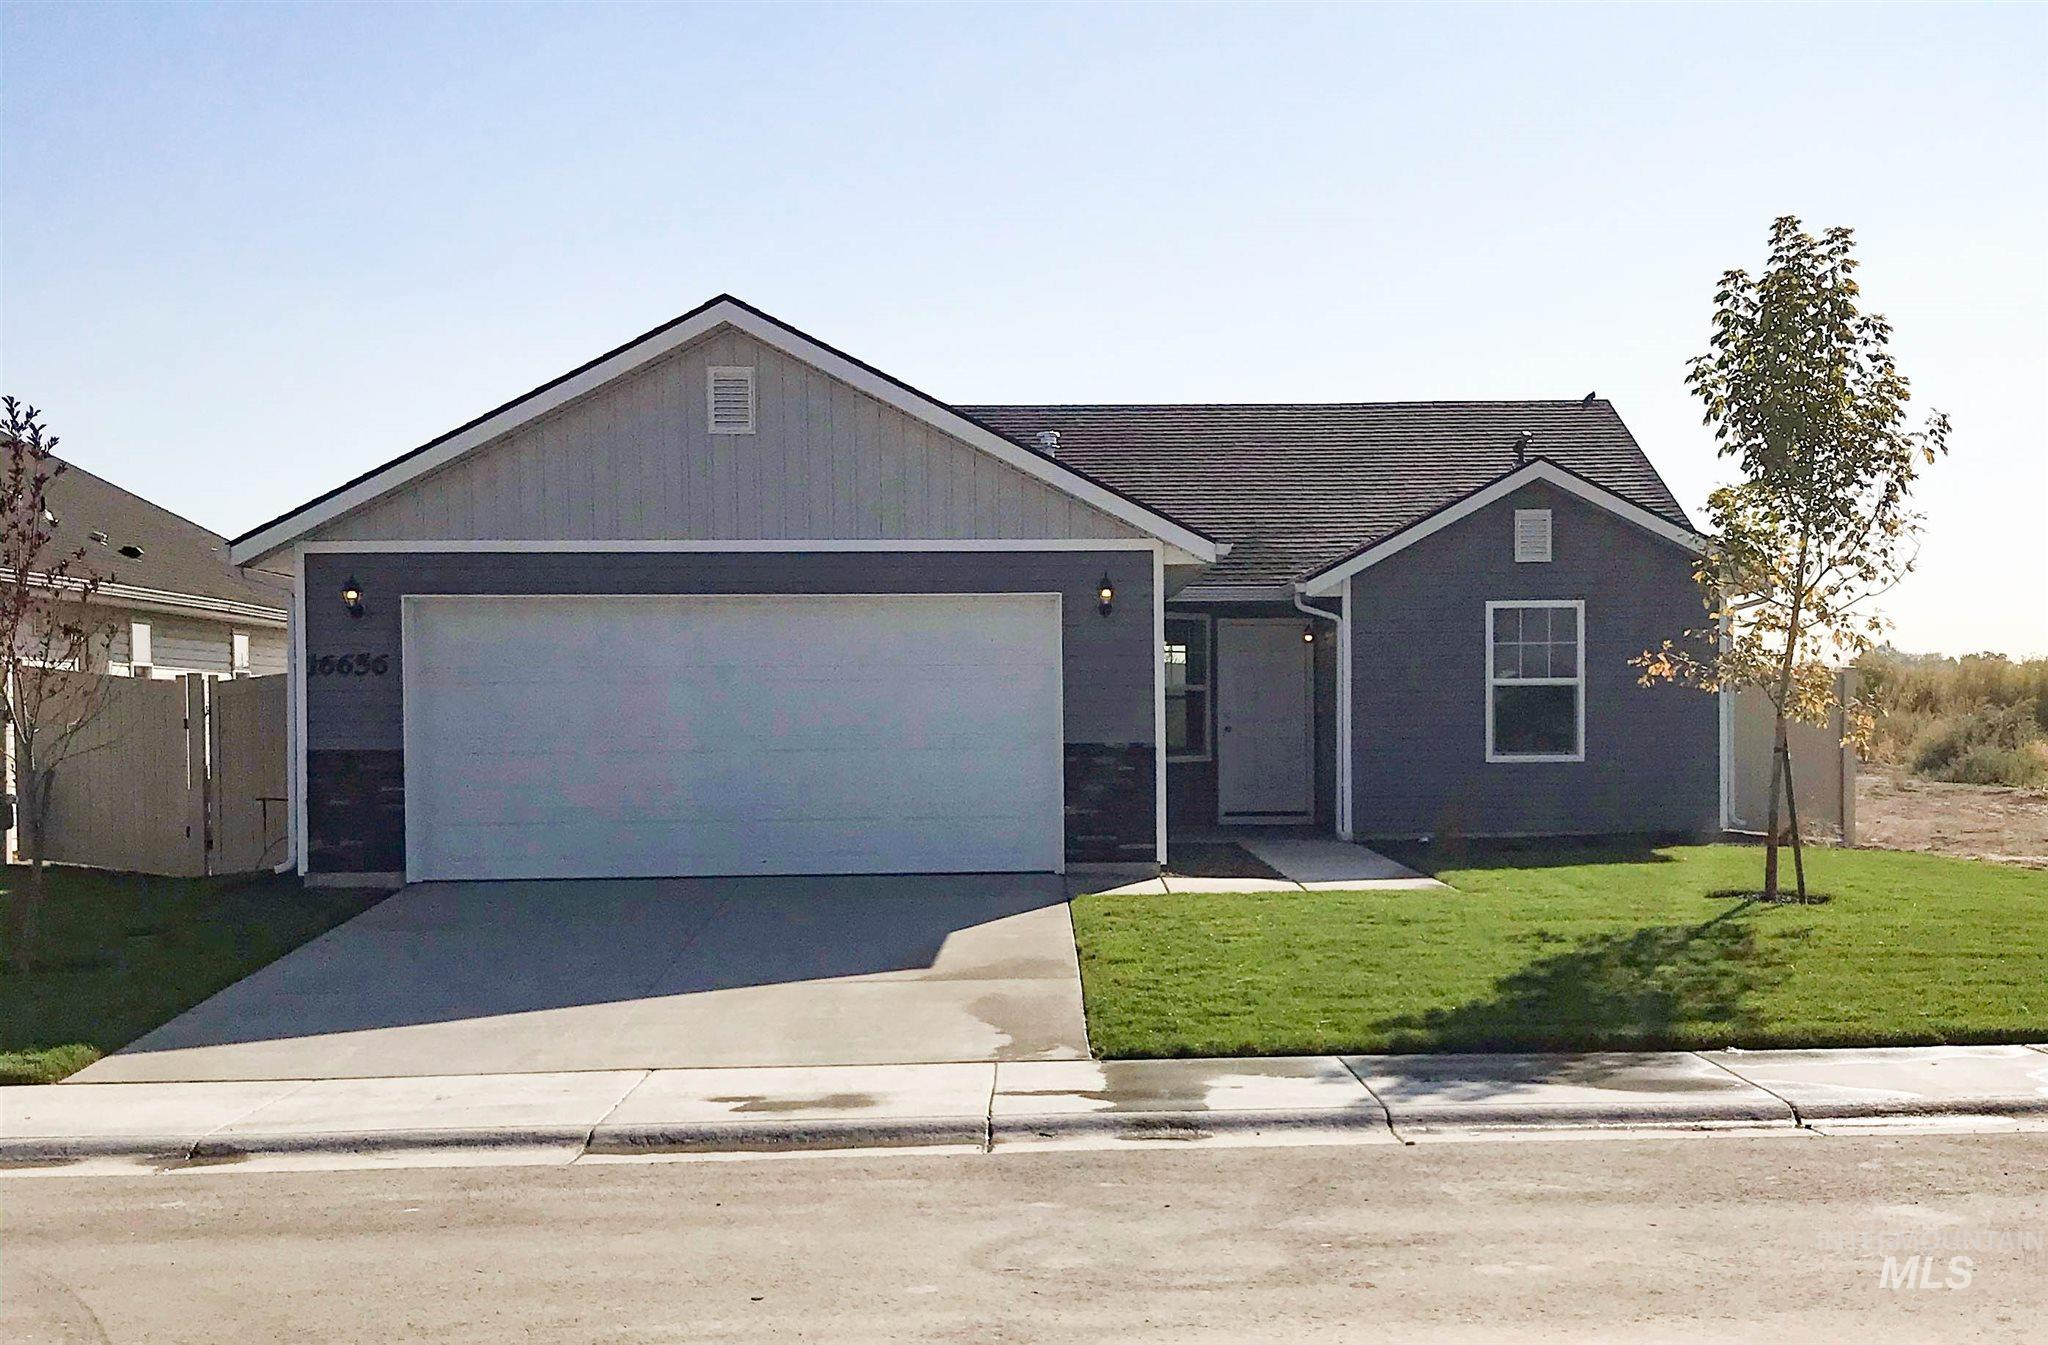 Photo for 16656 Loggia St., Caldwell, ID 83607 (MLS # 98763036)